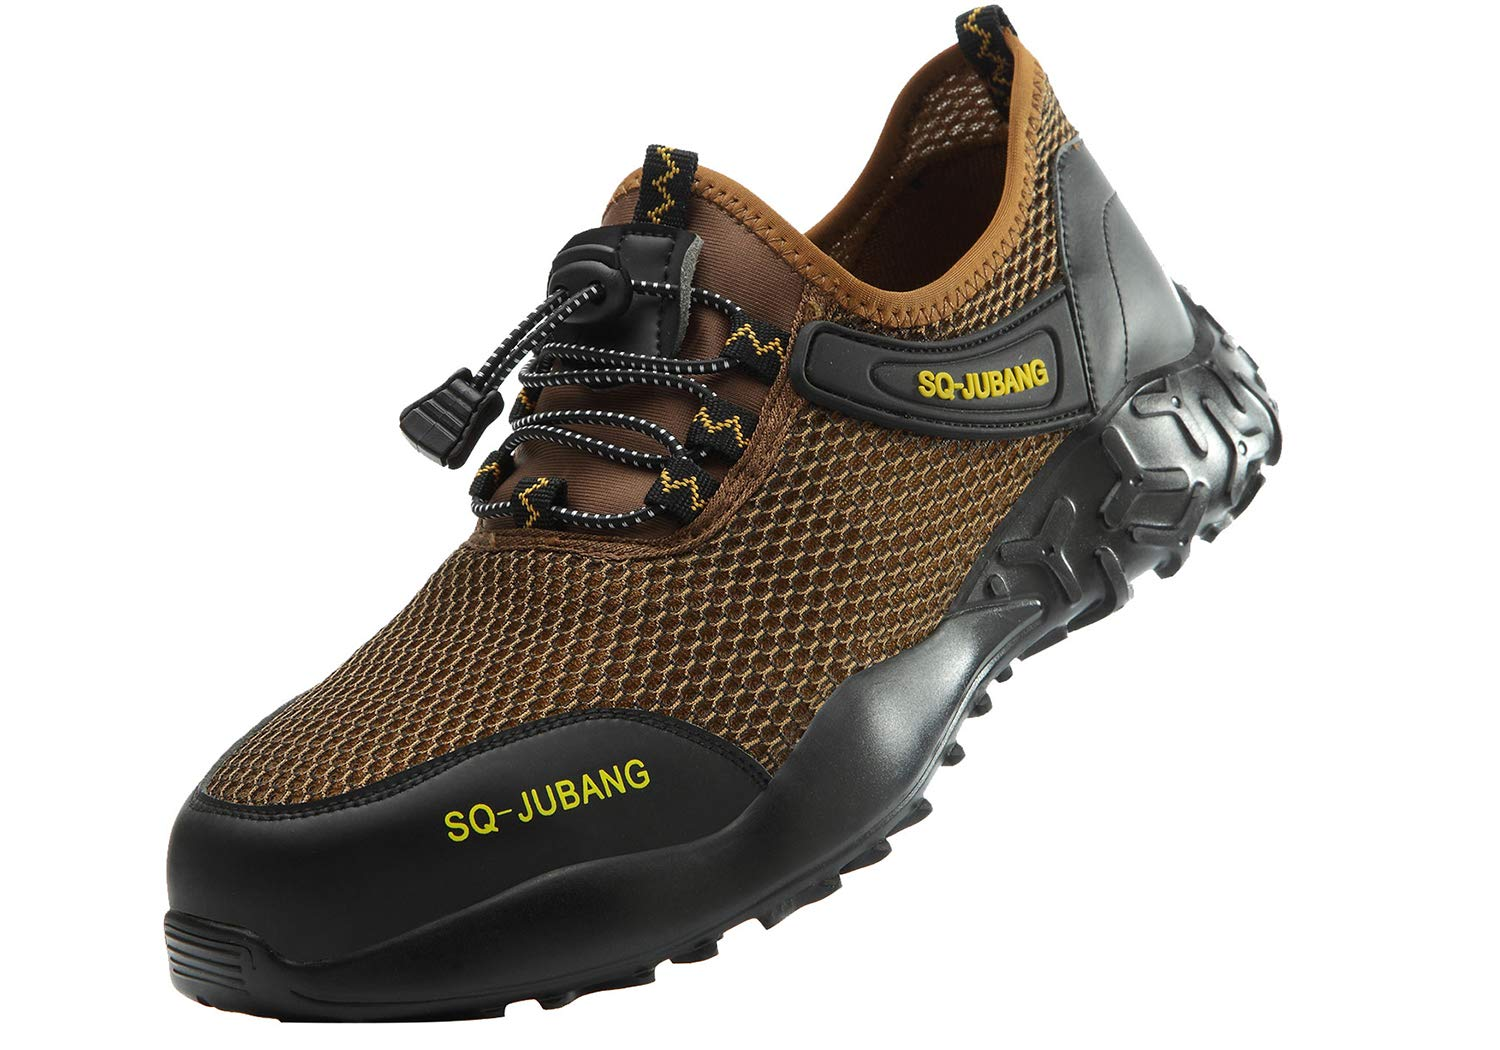 SUADEX Indestructible Steel Toe Shoes for Men Women Lightweight Breathable Work Safety Shoes Construction Sneakers for Trecking Hiking